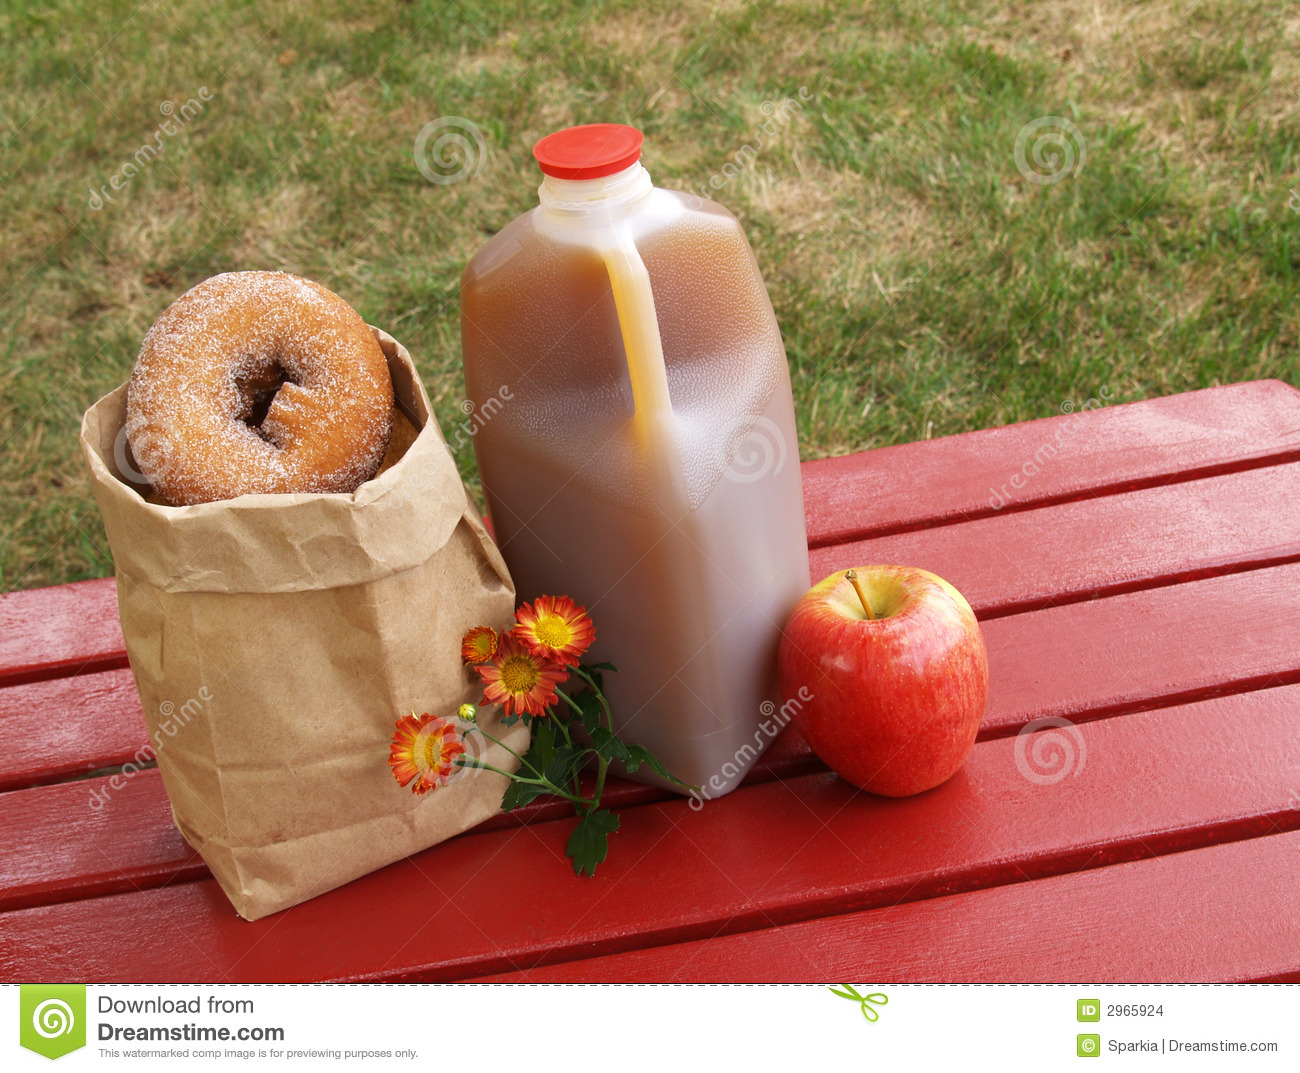 Apple Cider And Donuts Clipart.